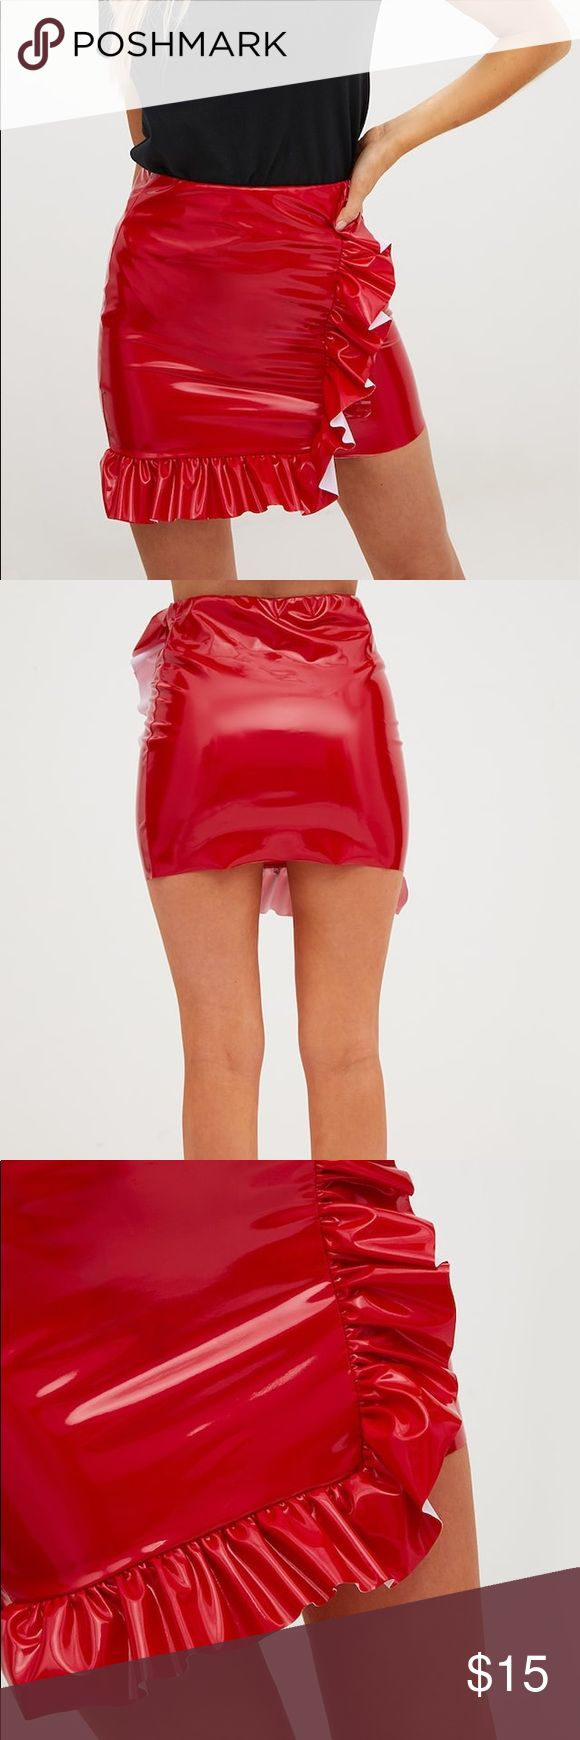 PLT Red Petite PU Frill Front Vinyl Mini Skirt Will be for sale Friday, Dec 1, 2017! Brand new! Perfect condition! Only worn once for 20 minutes for professional photo shoot! Vinyl texture. Note: This skirt is made for petite women, 5 ft 4 and shorter. Model is 5 ft 4. Thigh skimmer mini length. Length approximately 17 inches. Spot clean only. Super cute with my red faux fur coat (see my closet 💕) price is firm! Pretty Little Thing Skirts Mini